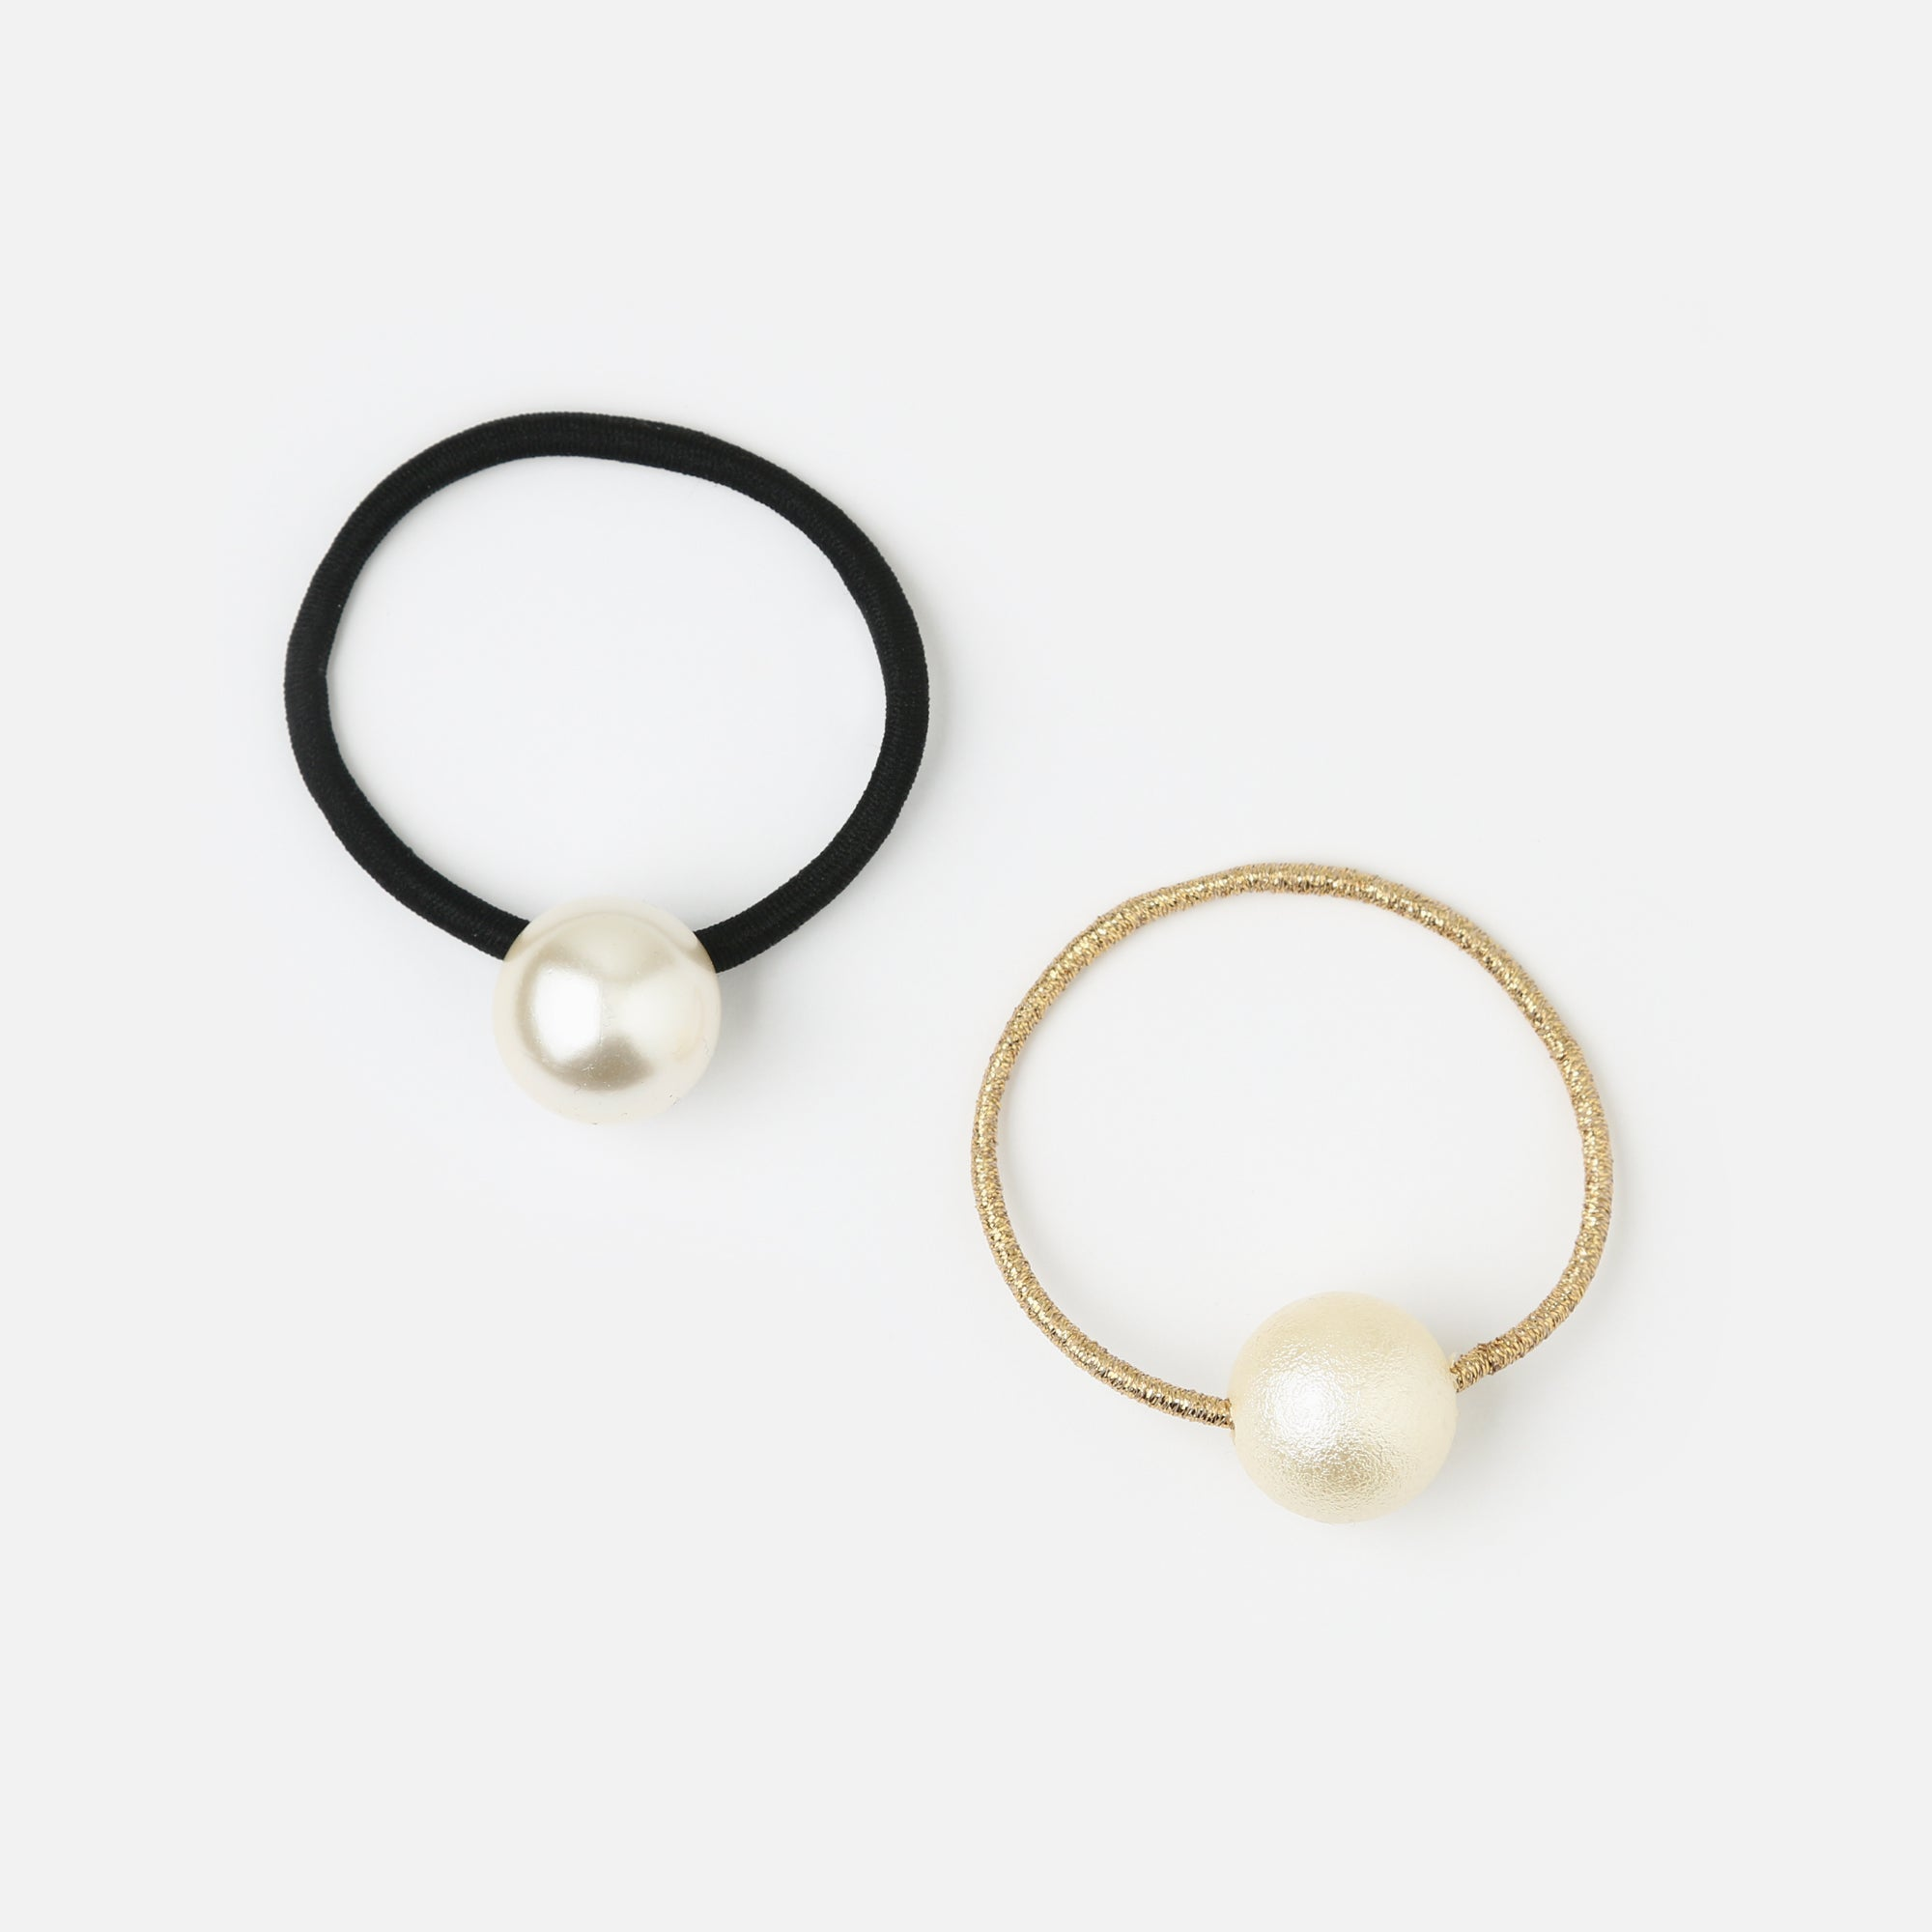 Pearl Stretch Hair Band - 2 Pack